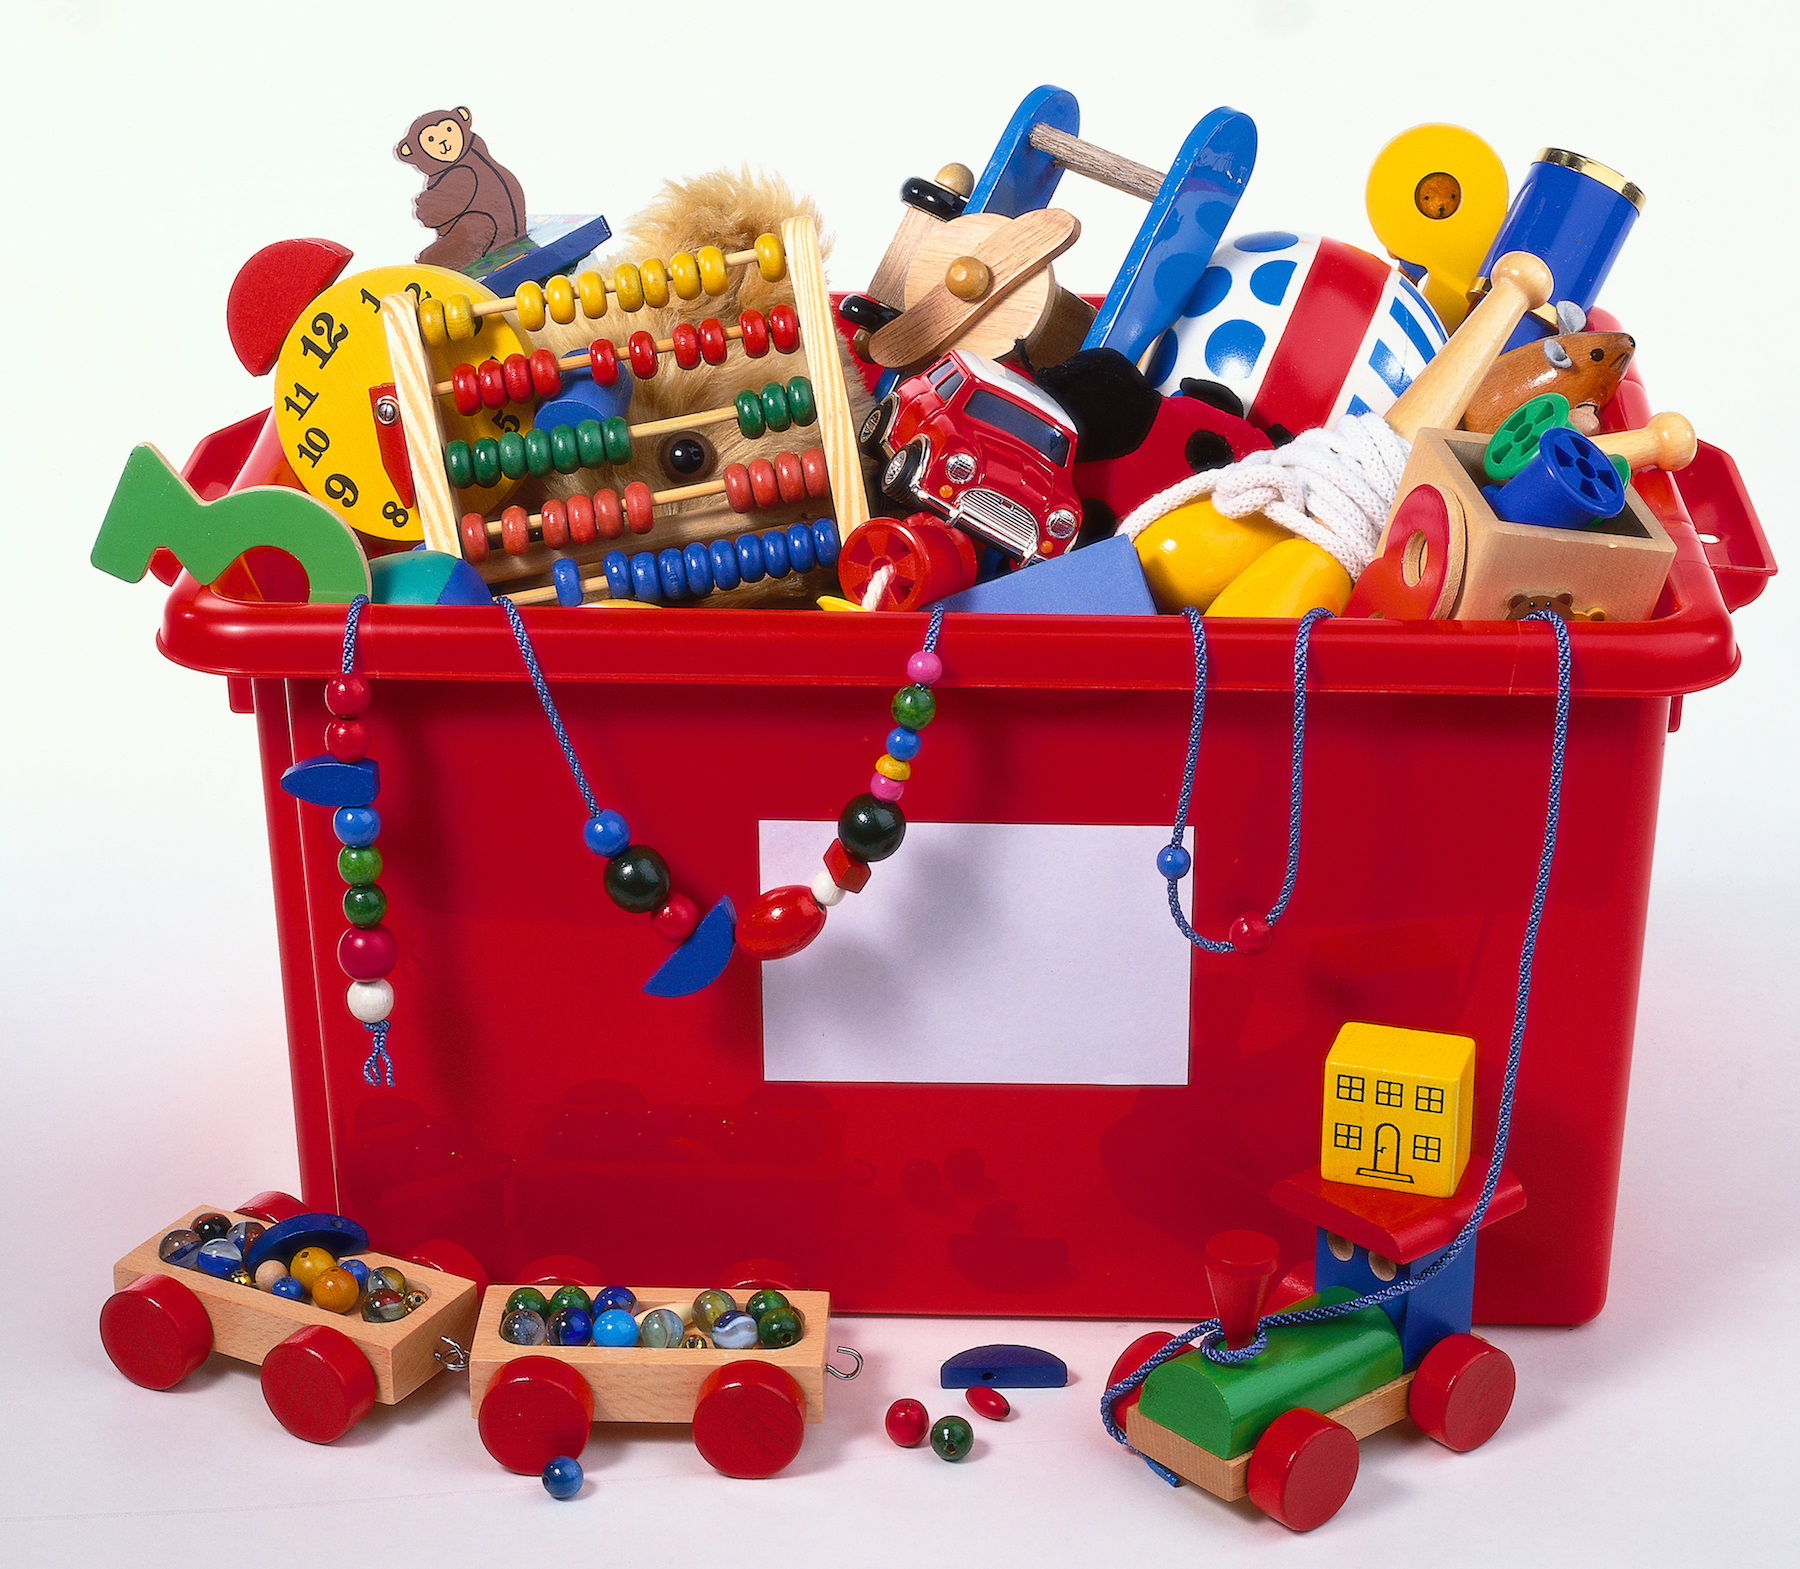 Red toy box